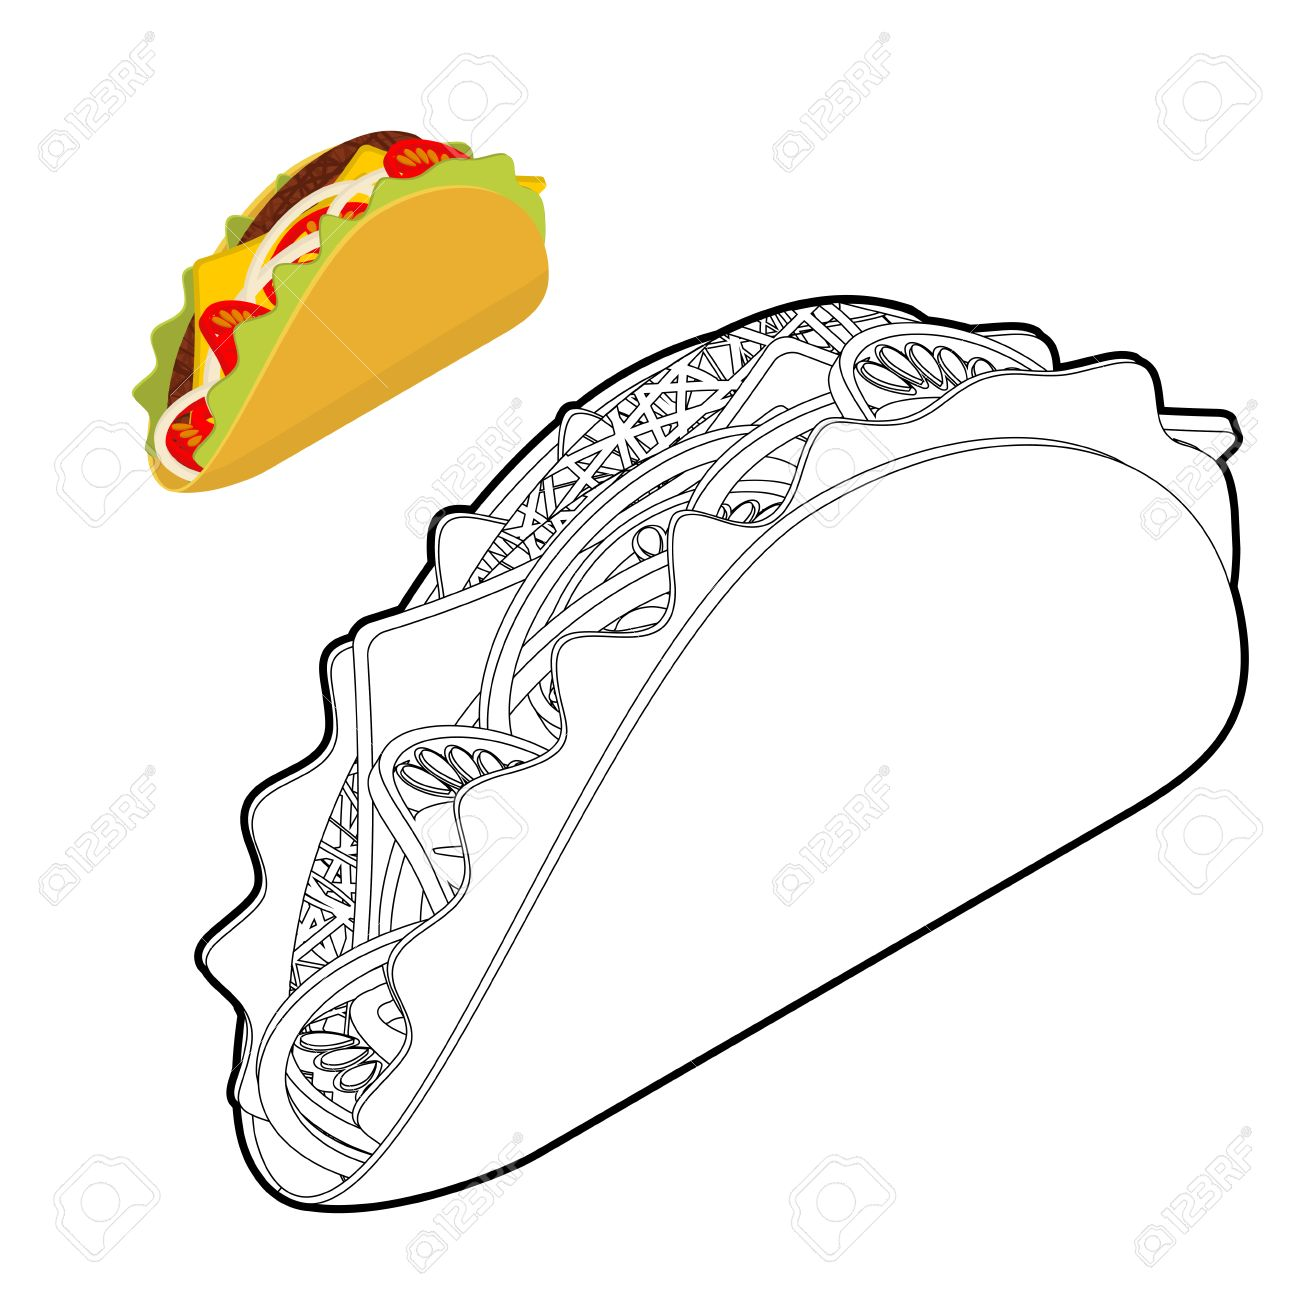 Taco Coloring Book Traditional Mexican Food In Linear Style